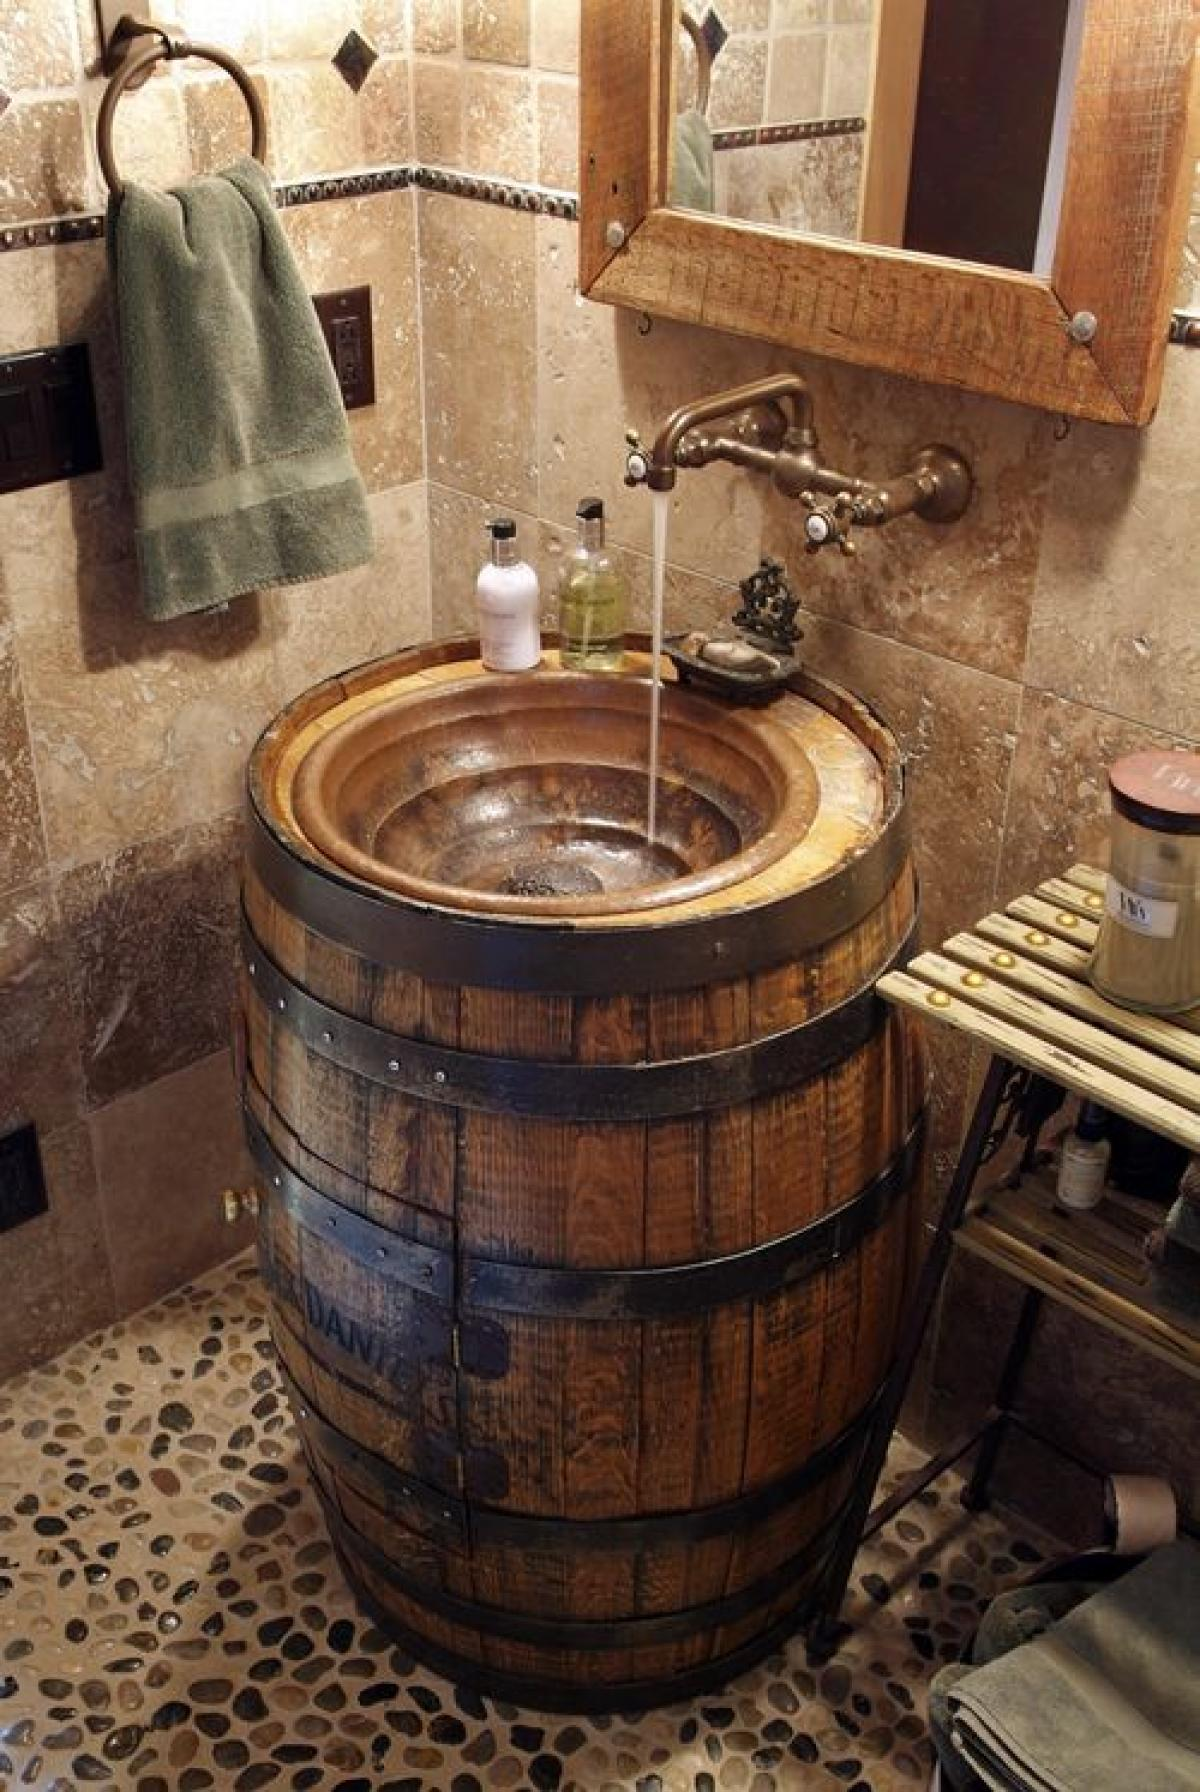 17 inspiring rustic bathroom decor ideas for cozy home Bath barn